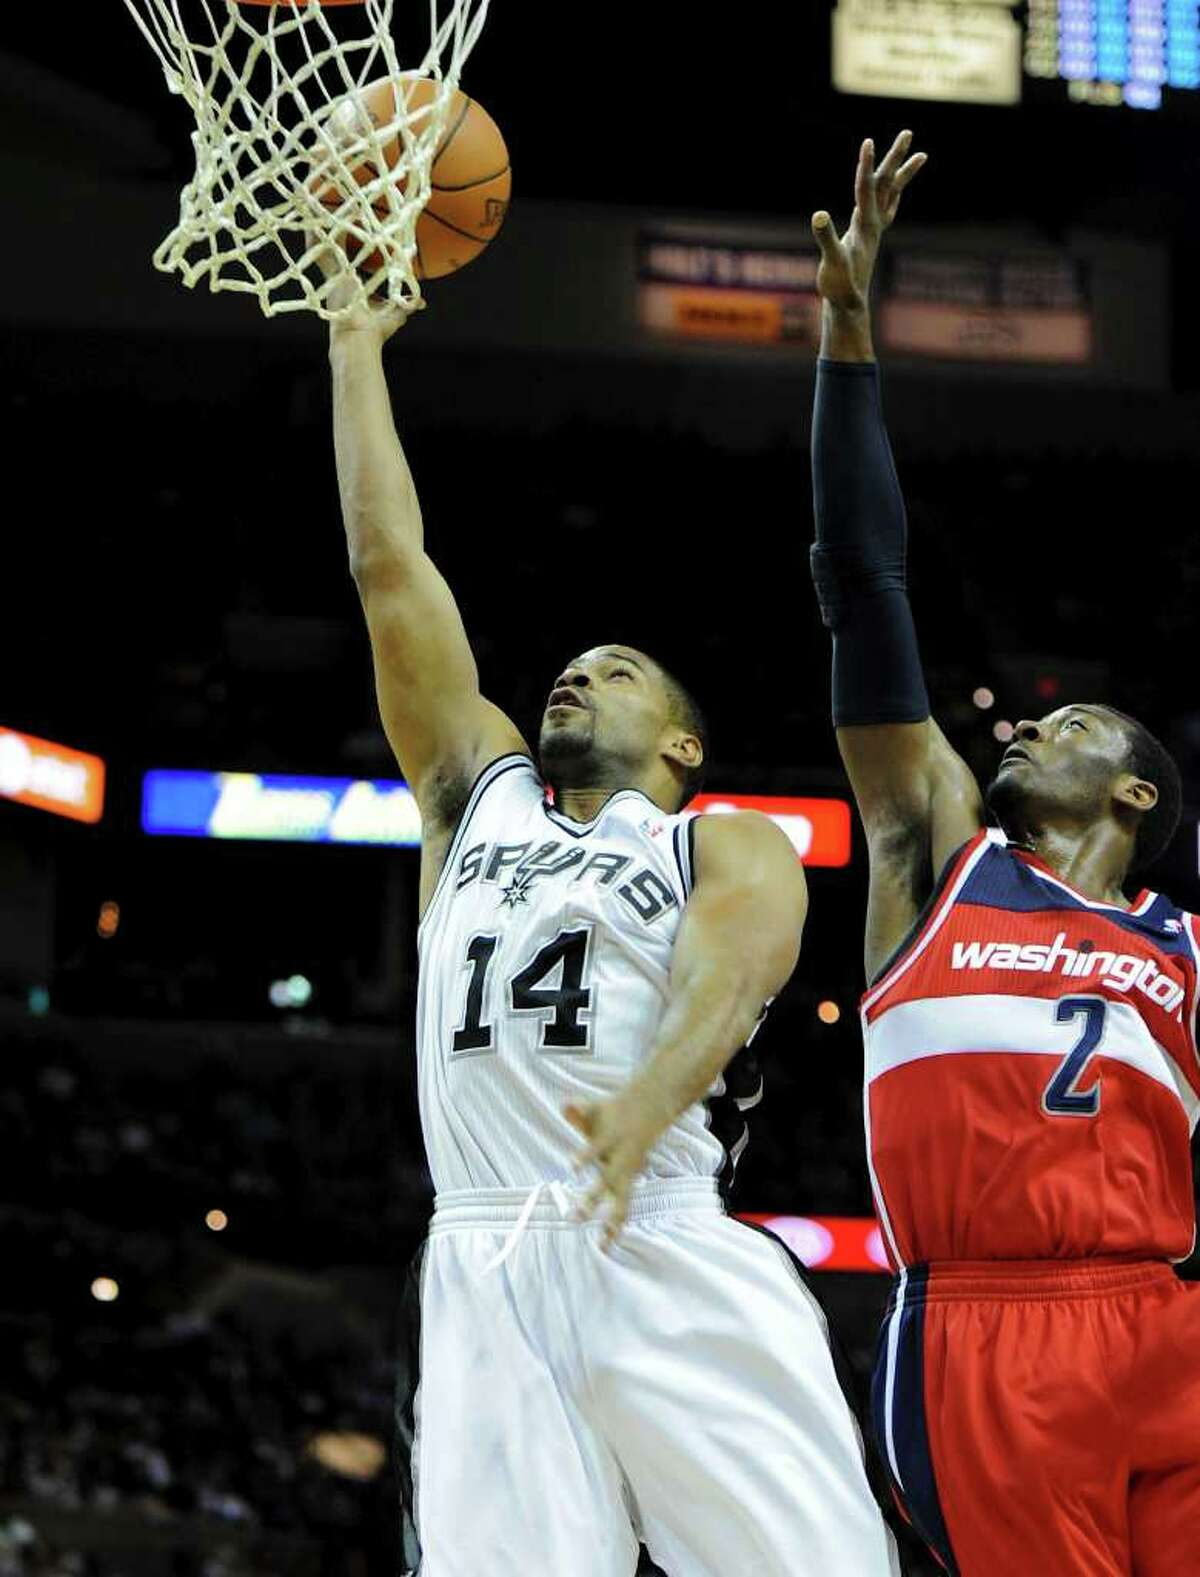 San Antonio Spurs point guard Gary Neal (14) puts up a layup as Washington Wizards point guard John Wall (2) defends during a NBA basketball game between the Washington Wizards and the San Antonio Spurs at the AT&T Center in San Antonio, Texas on March 12, 2012. John Albright / Special to the Express-News.